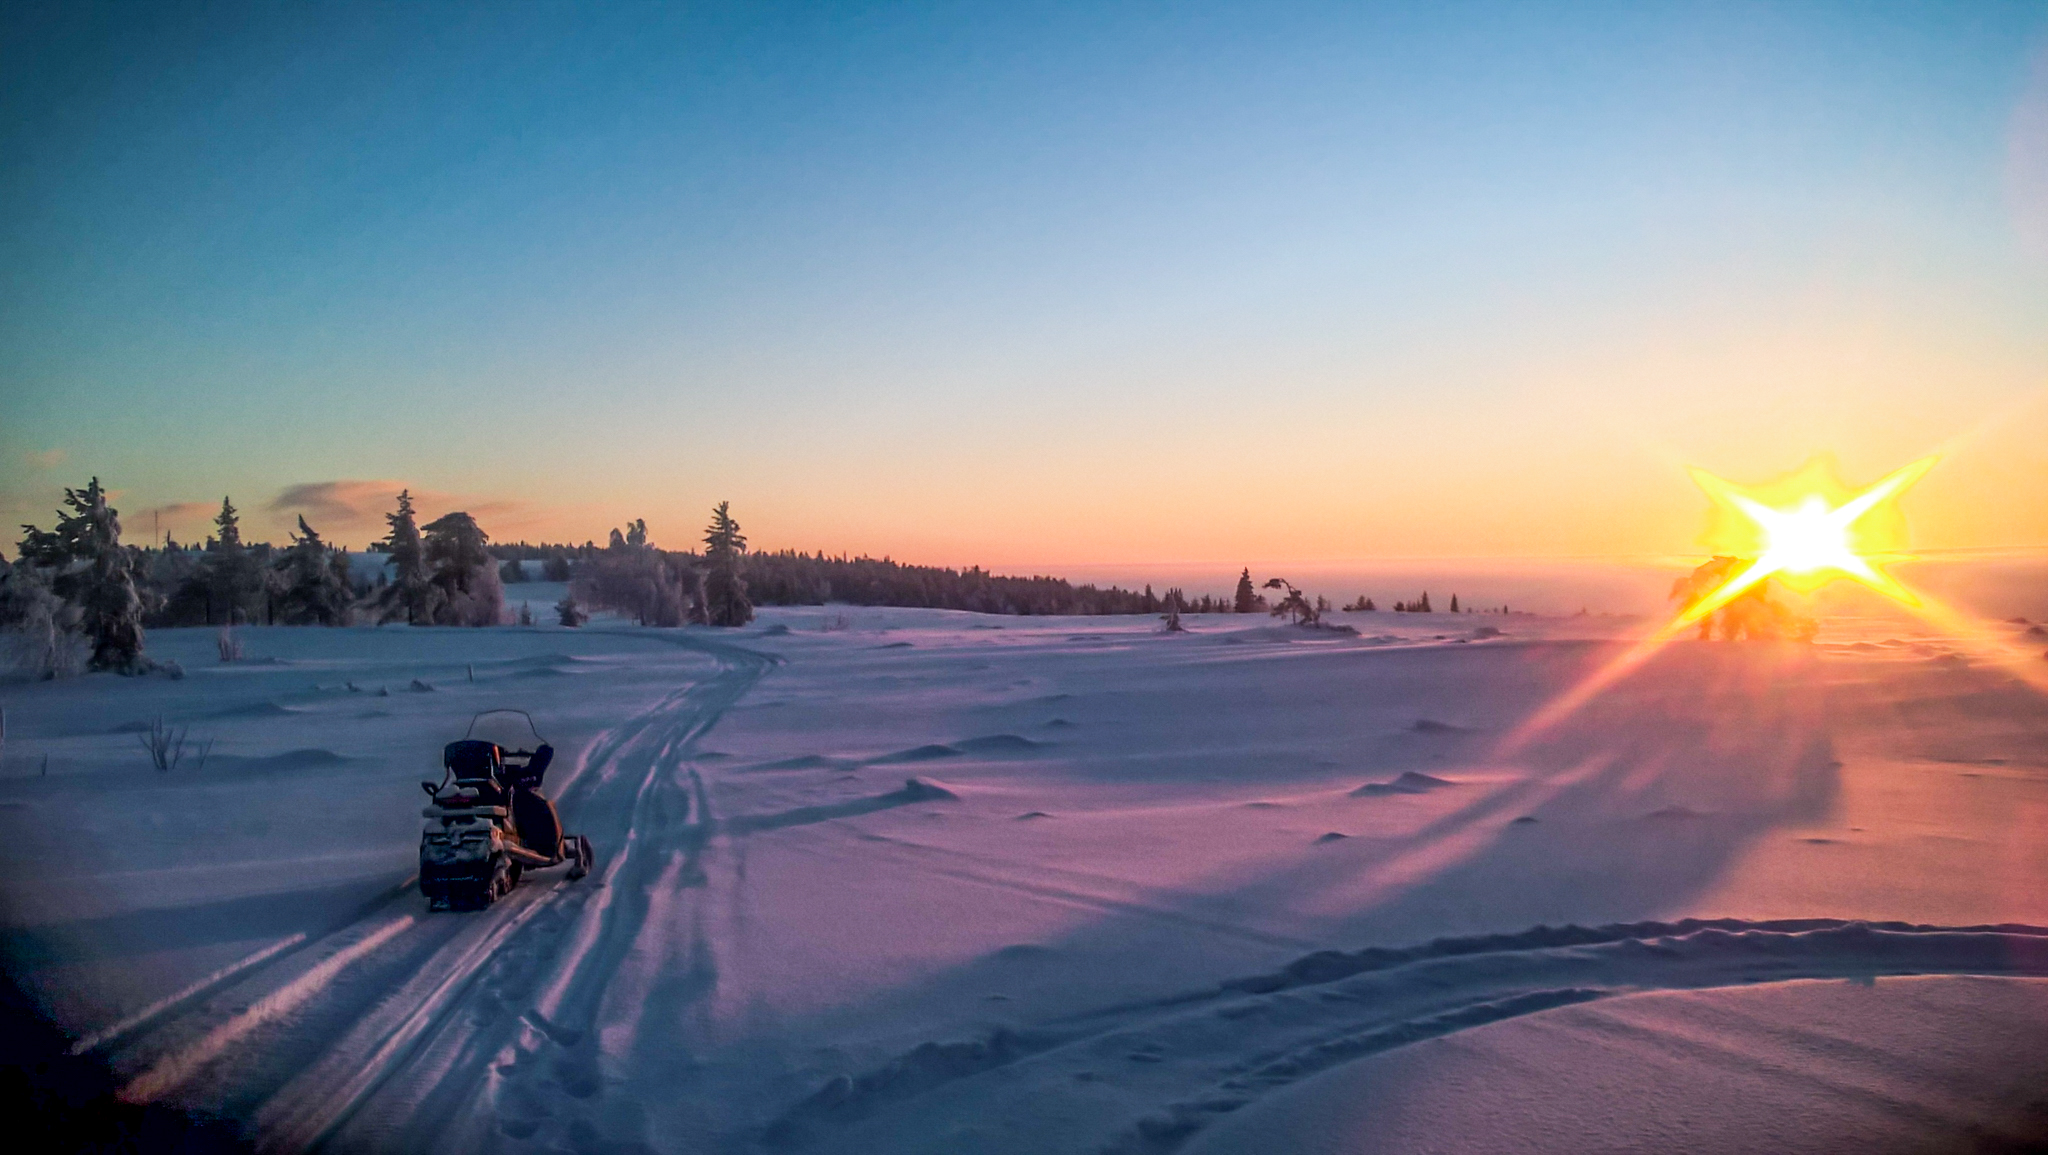 snowmobile with landscape and sunset